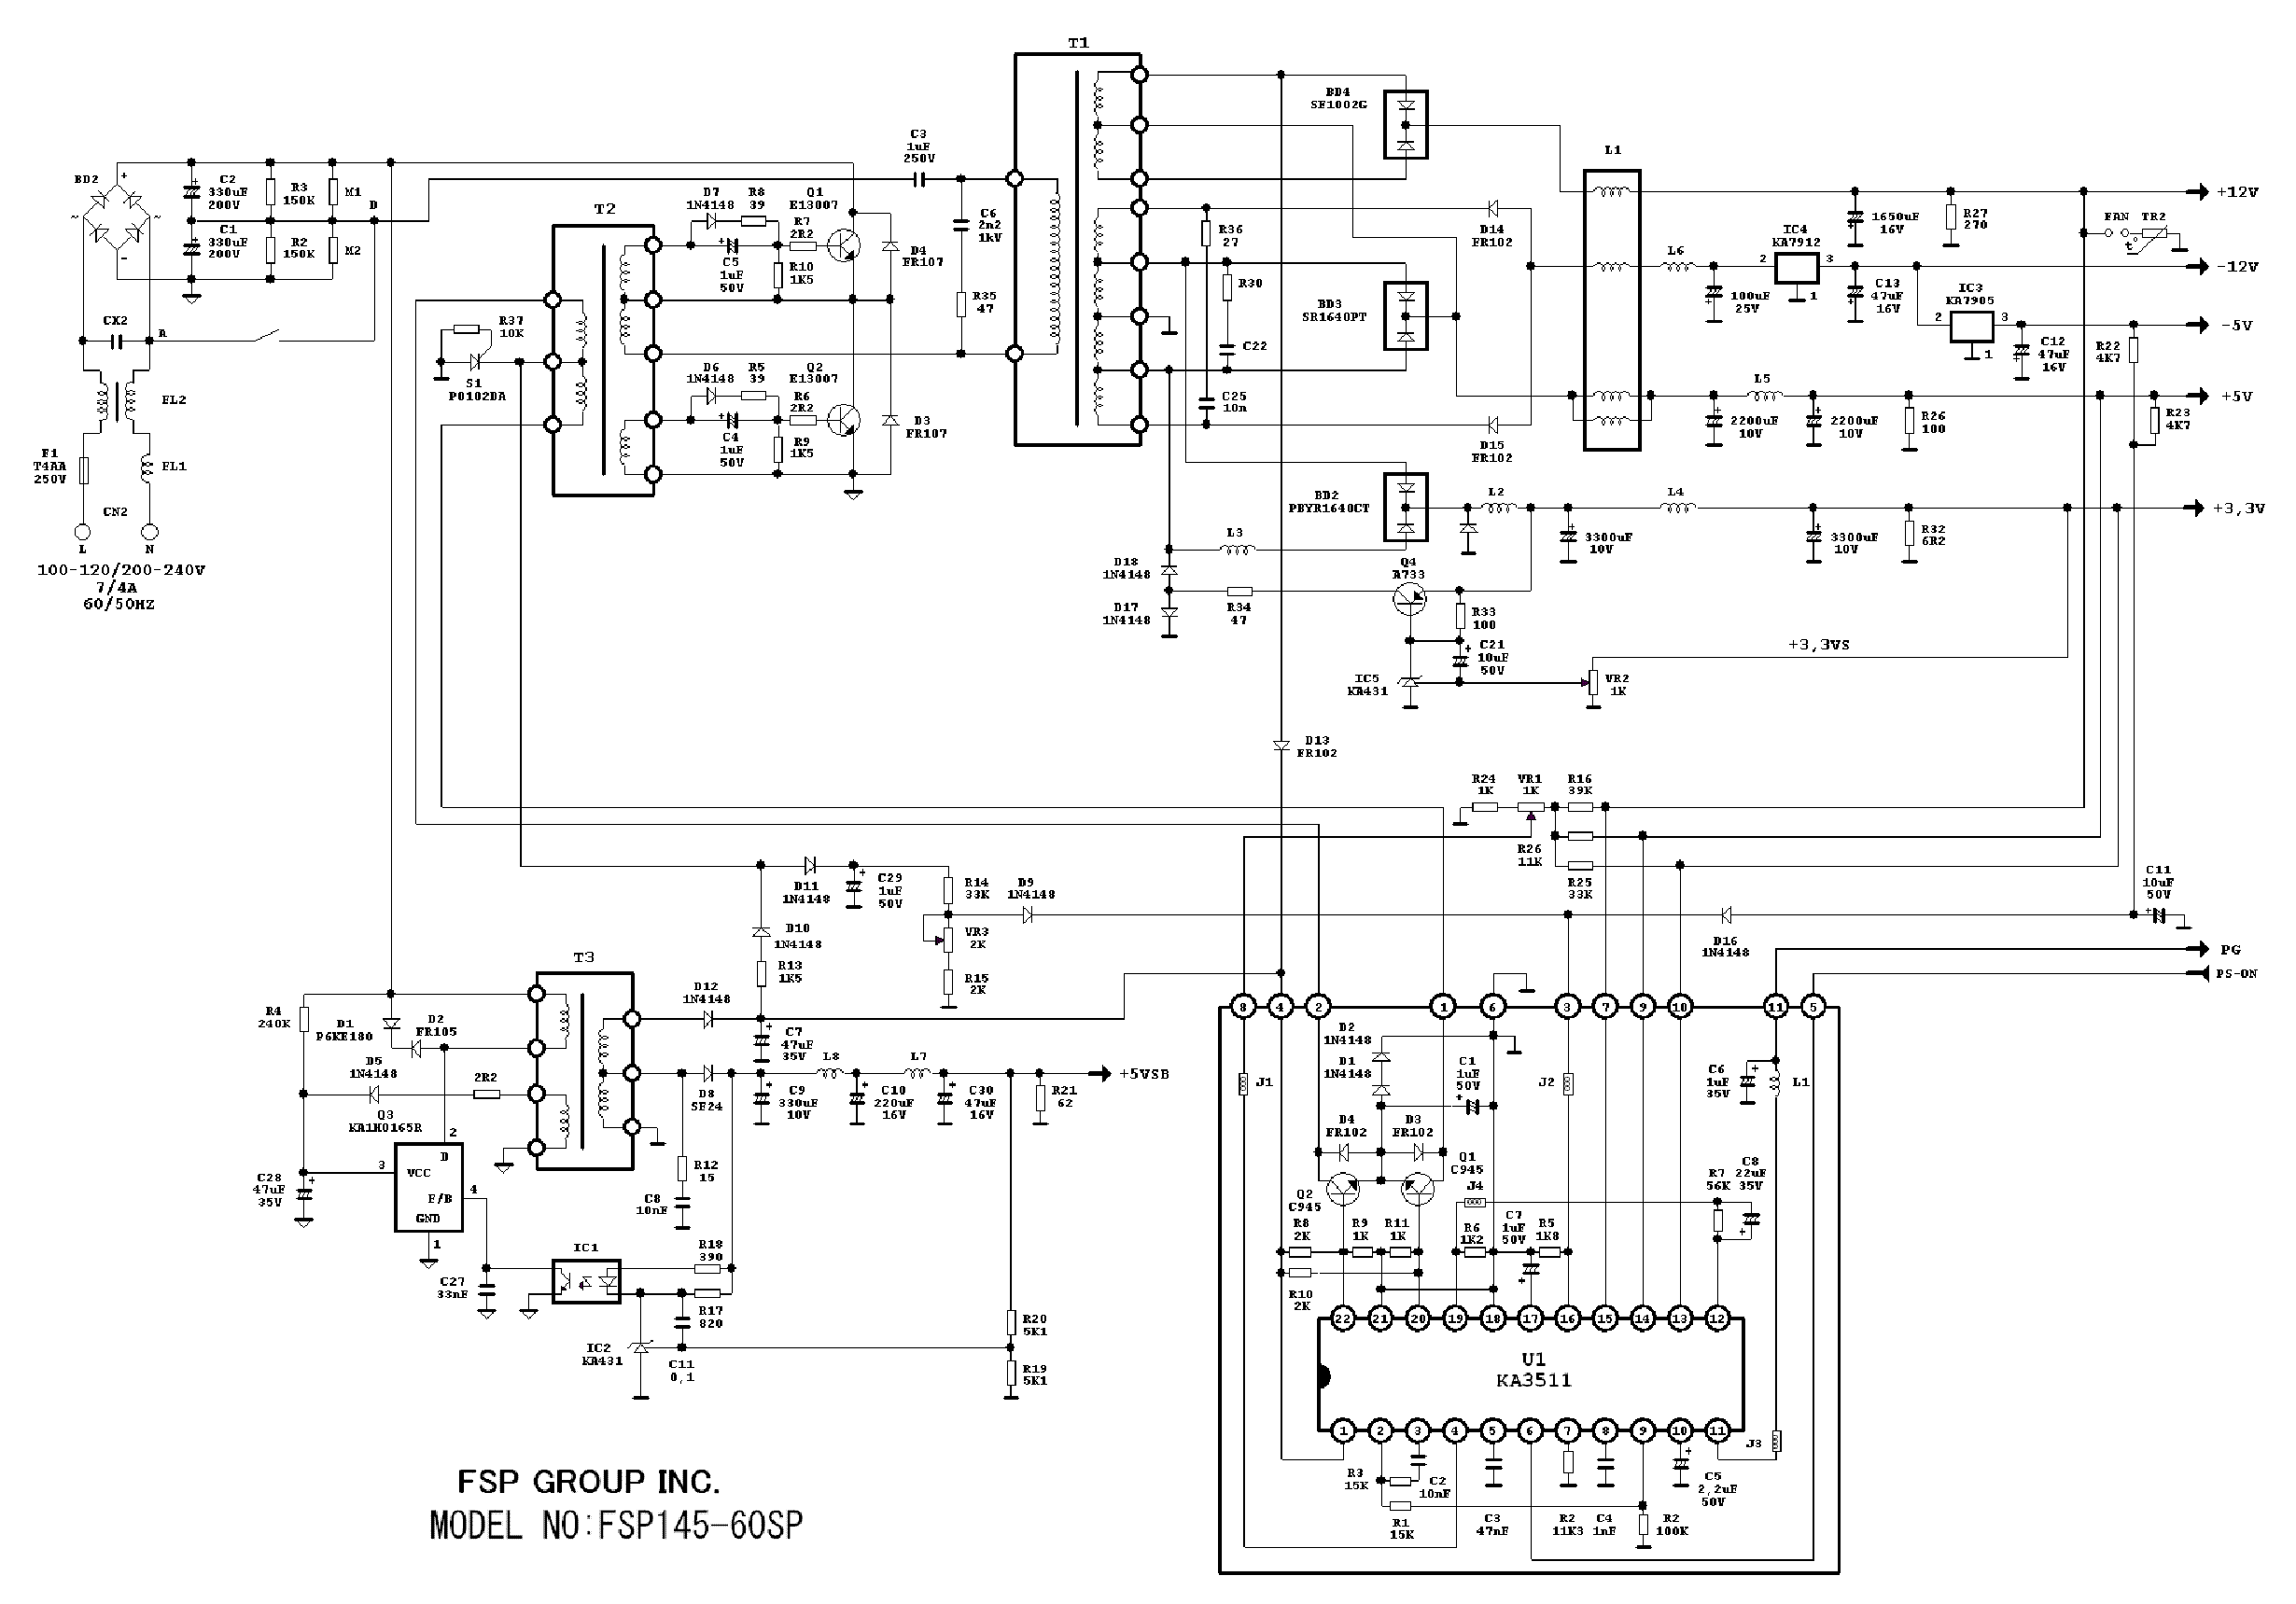 ATX Power Supply Schematic http://elektrotanya.com/fsp145-60sp_atx_power-supply_sch.pdf/download.html